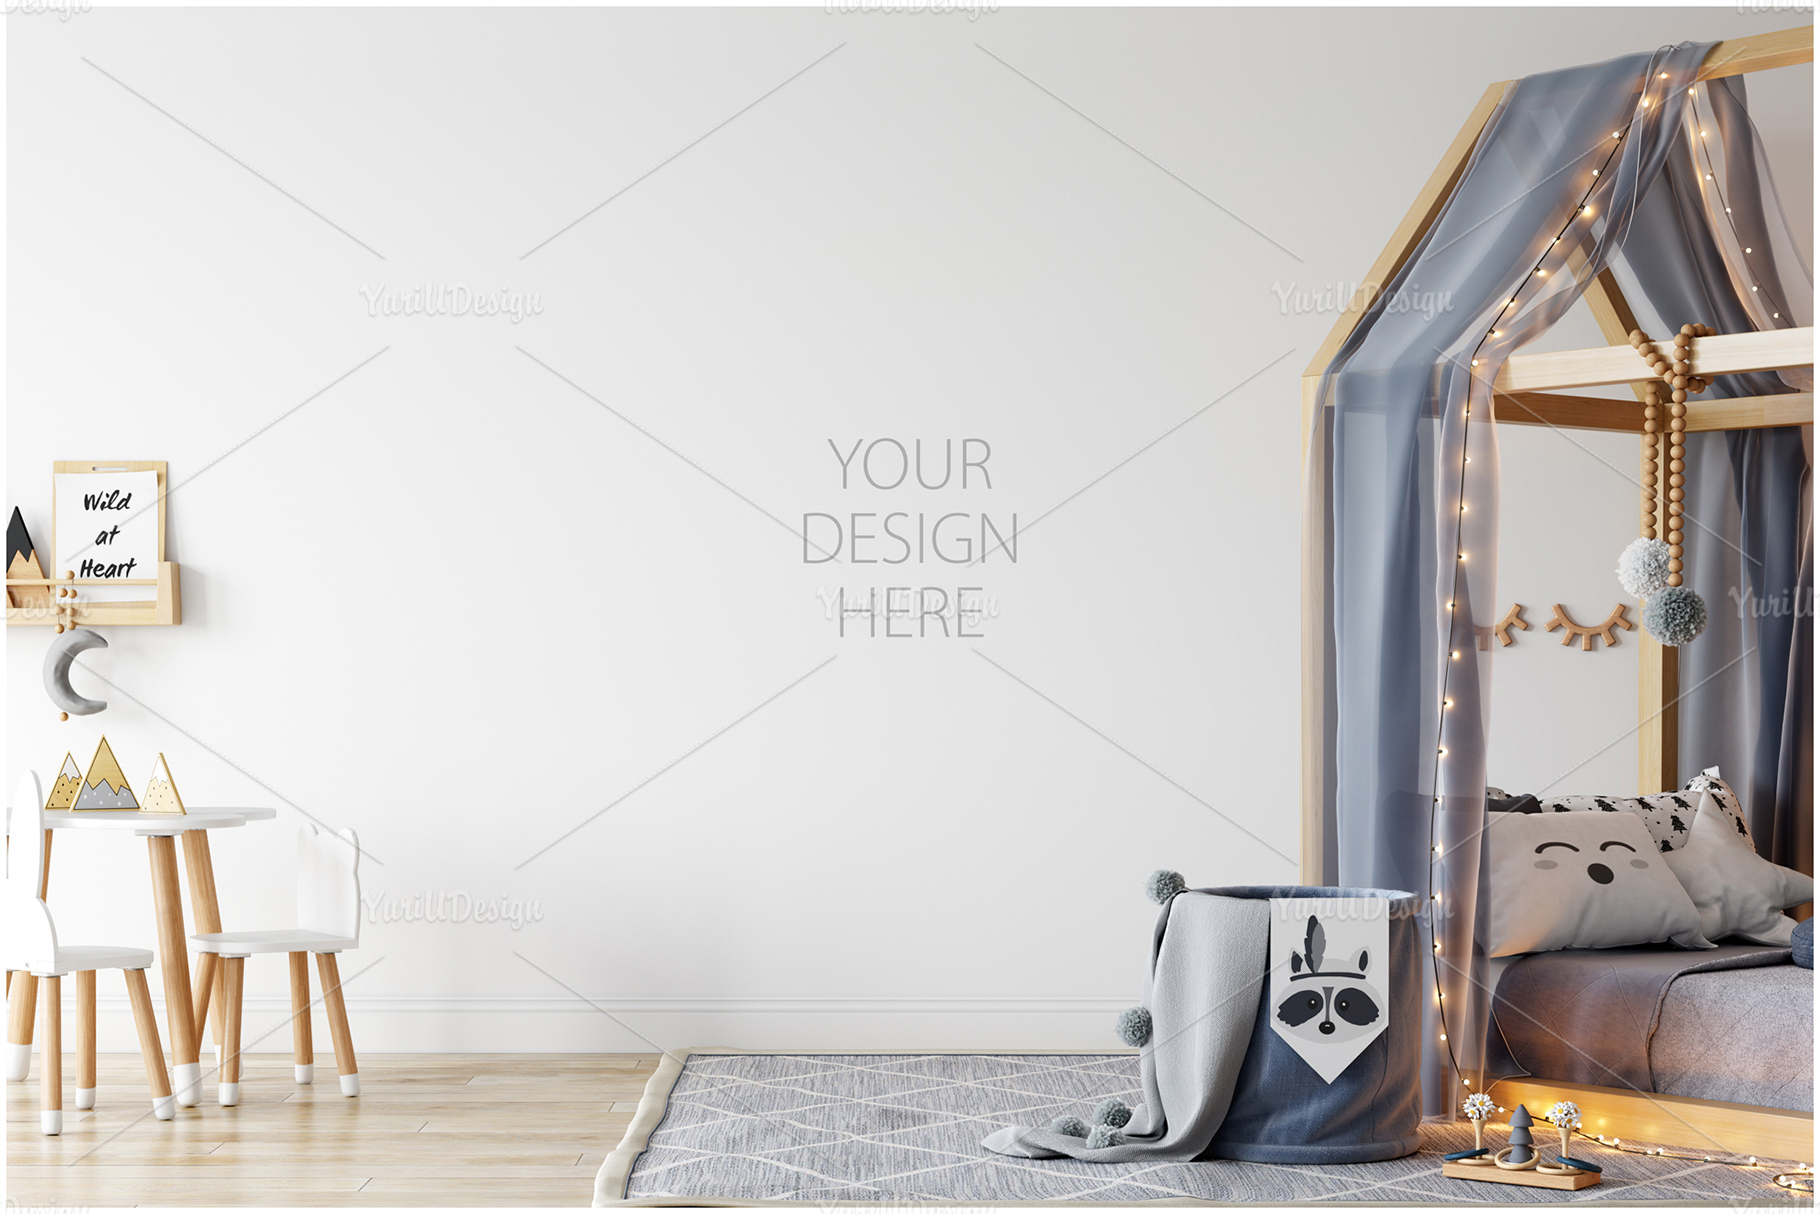 Kids Frames & Wall Mockup Bundle - 5 example image 12